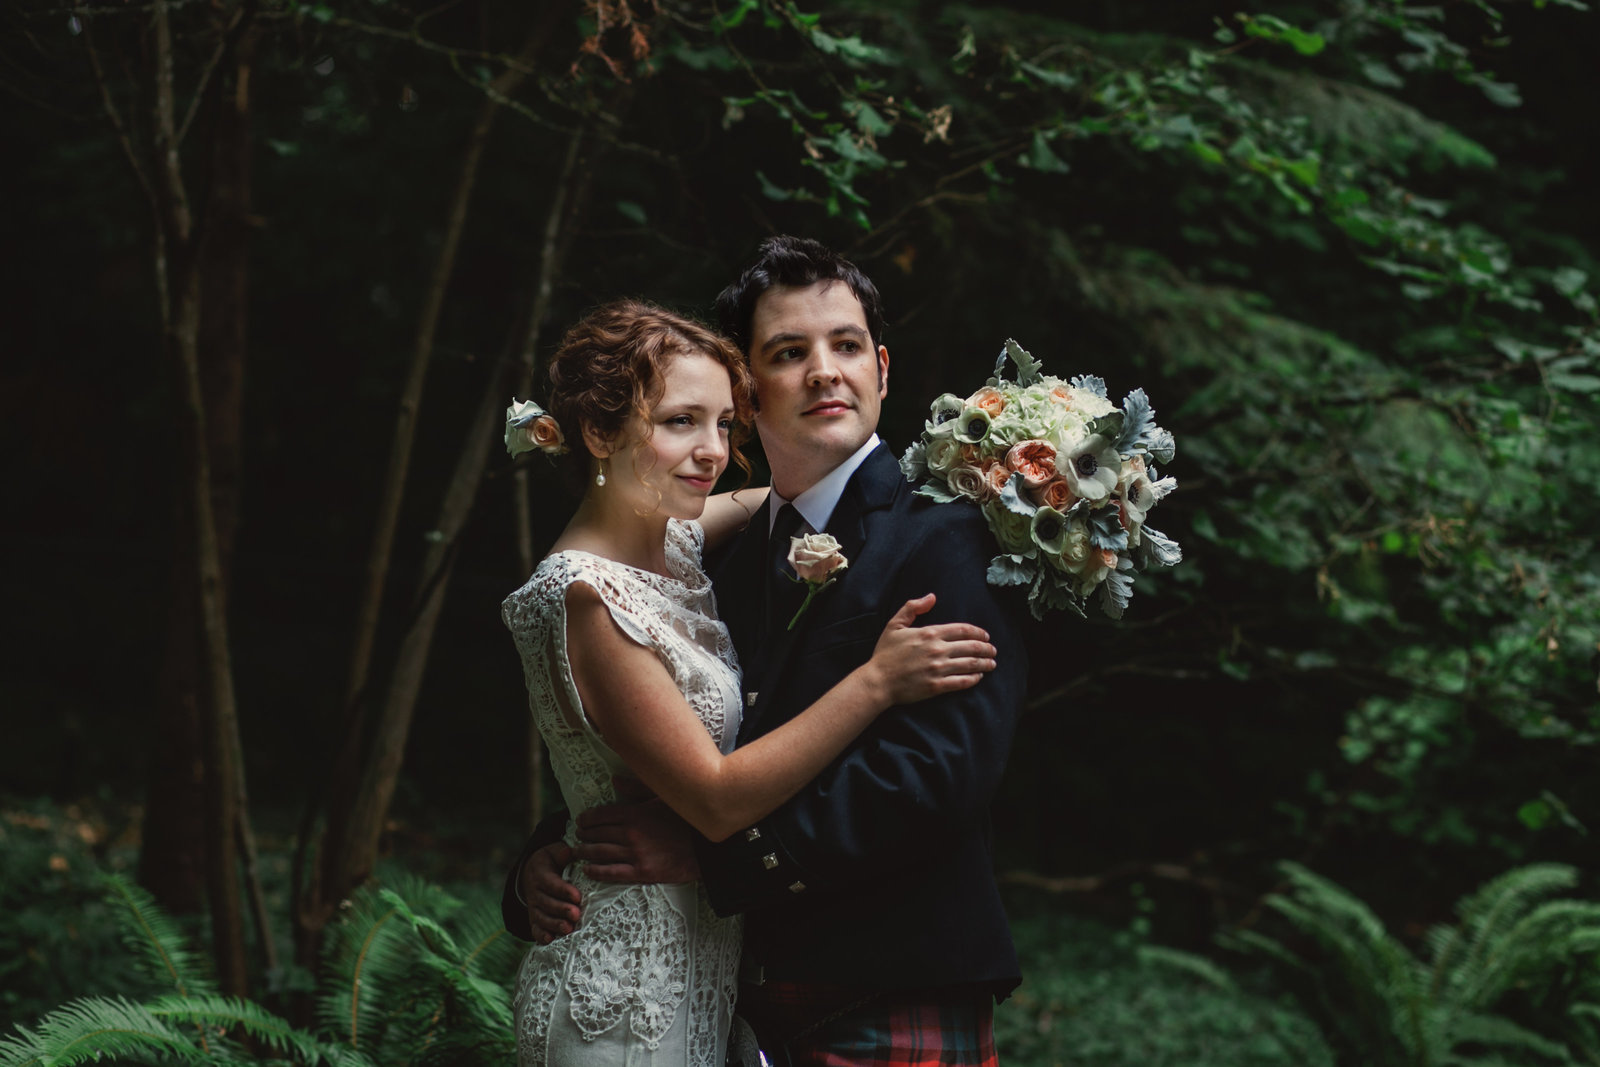 Beautiful portrait of bride and groom outdoors in the woods by best wedding photographer in portland Oregon Susie Moreno Photography